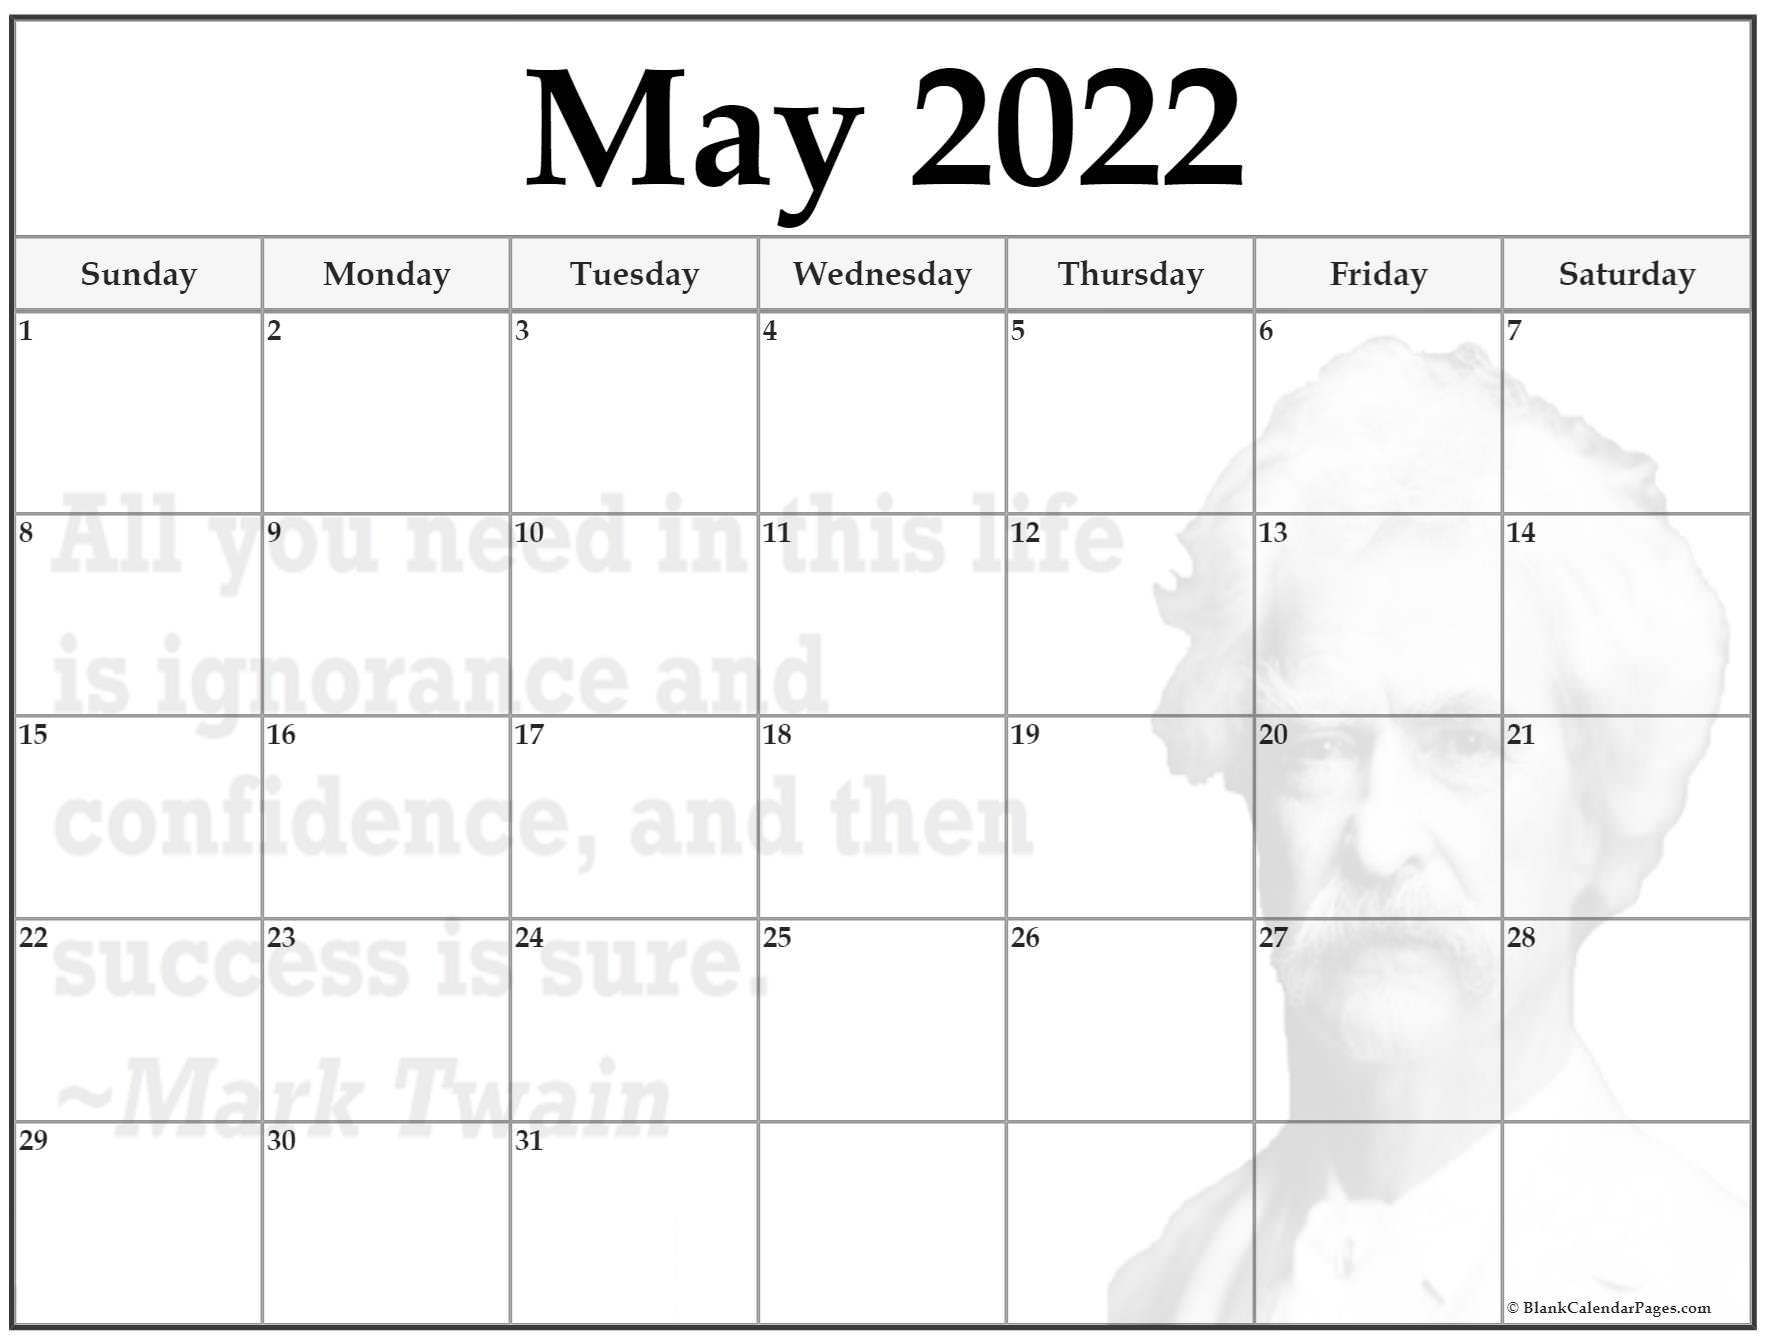 A landscape layout, blank may 2022 calendar pdf template with large notes space at the bottom. 24+ May 2022 quote calendars